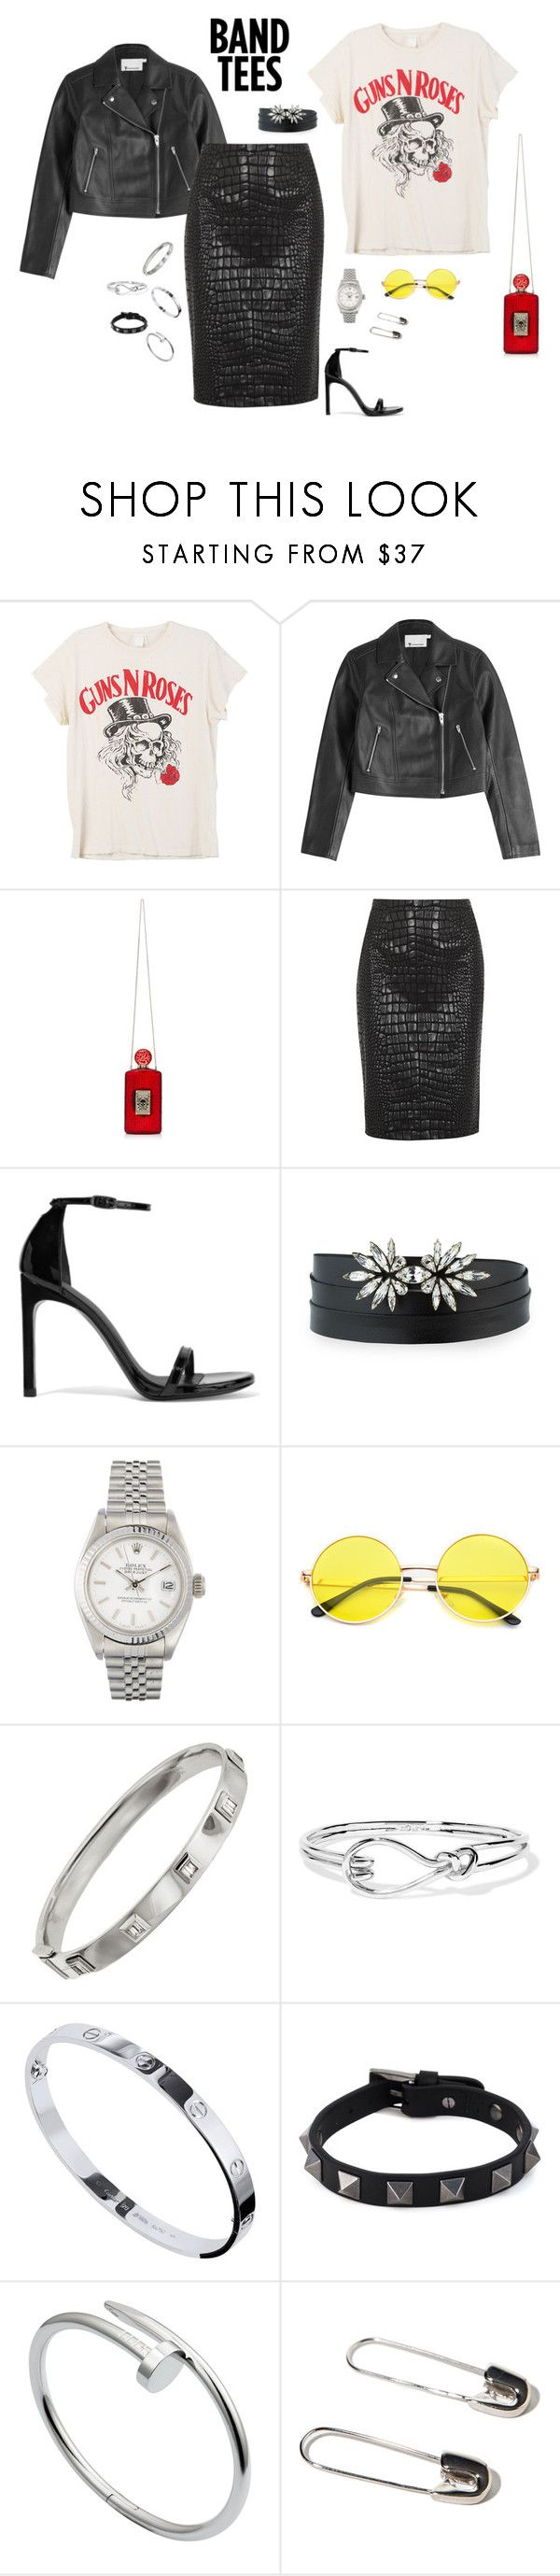 """Band Tee"" by marketazemanova ❤ liked on Polyvore featuring MadeWorn, T By Alexander Wang, Charlotte Olympia, Moschino Cheap & Chic, Stuart Weitzman, Auden, Rolex, Shay, Noir Jewelry and Cartier"